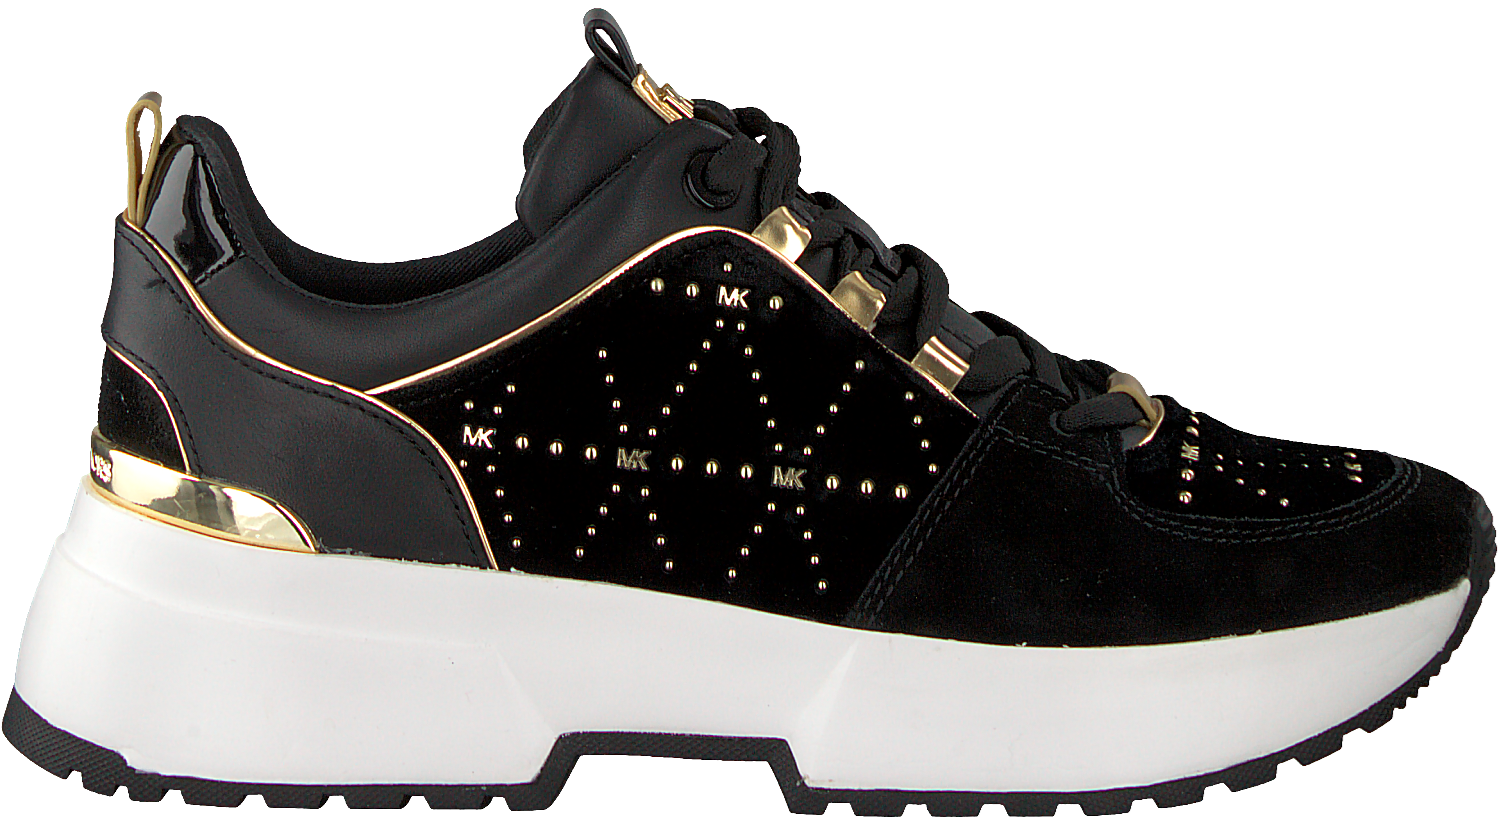 e6398a74d1b Black MICHAEL KORS Sneakers COSMO TRAINER - large. Next